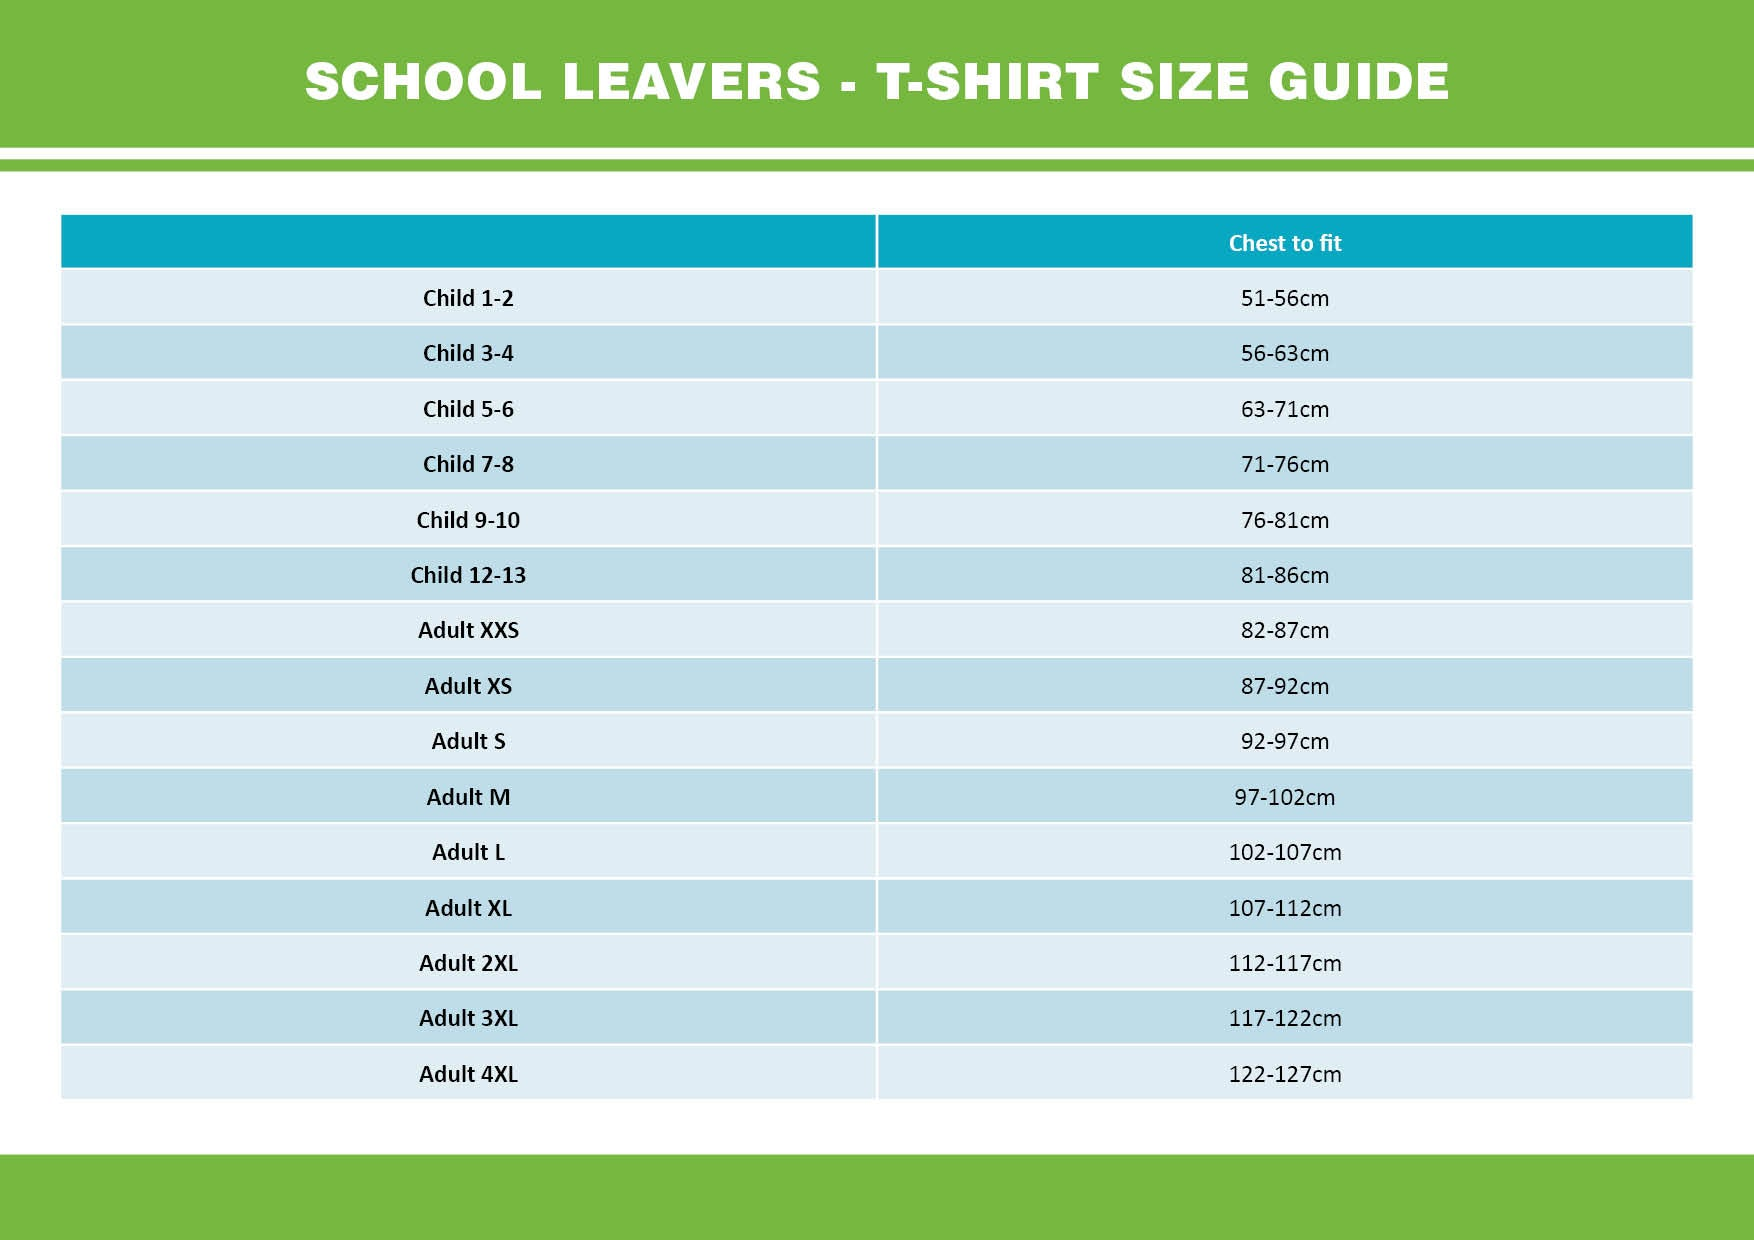 school leavers t-shirt size guide - 2020 leavers hoodies for schools